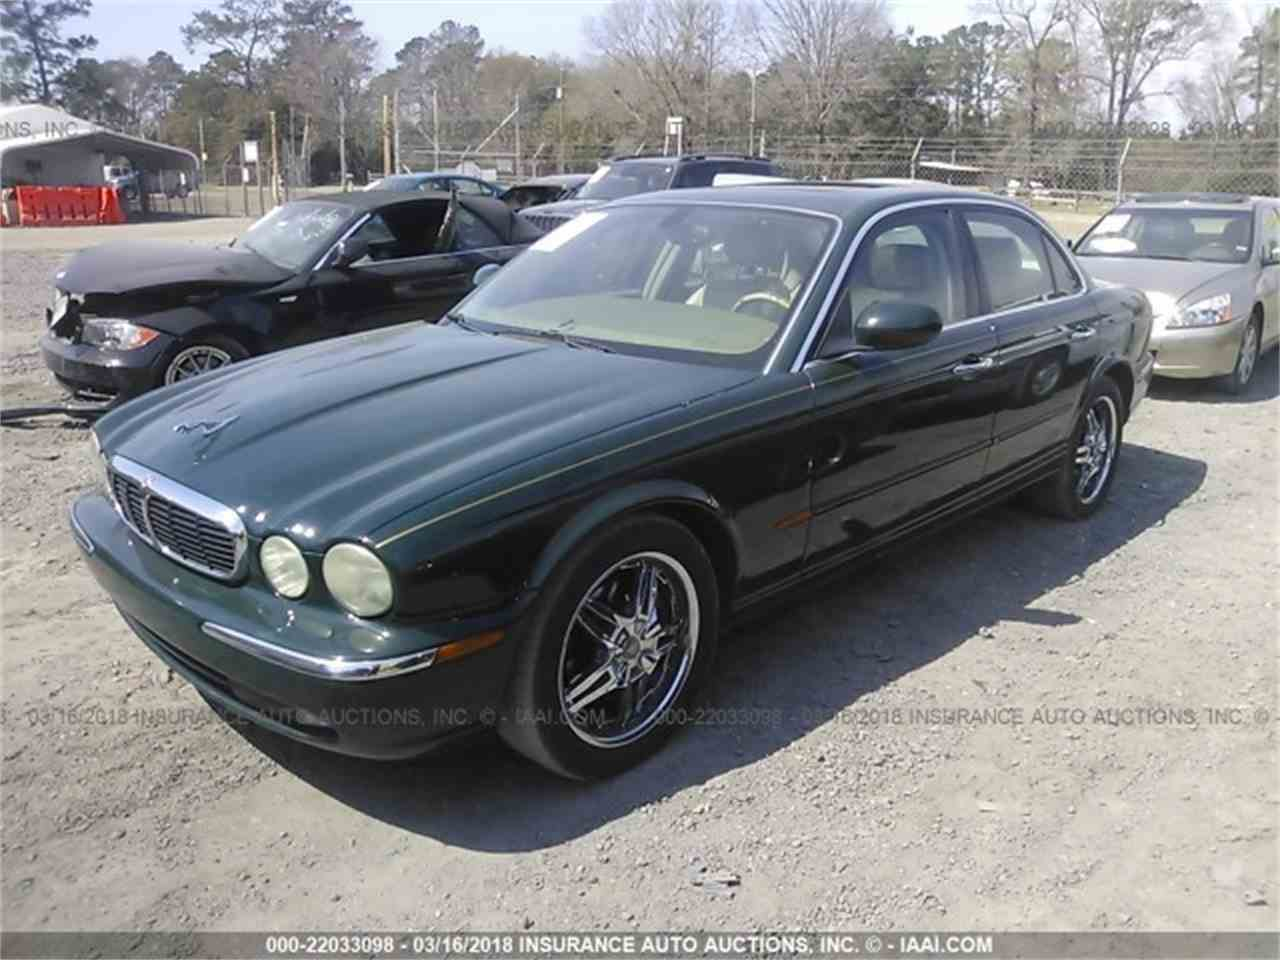 sale online located in jaguar classiccars auction picture large com of c for view cc std listings